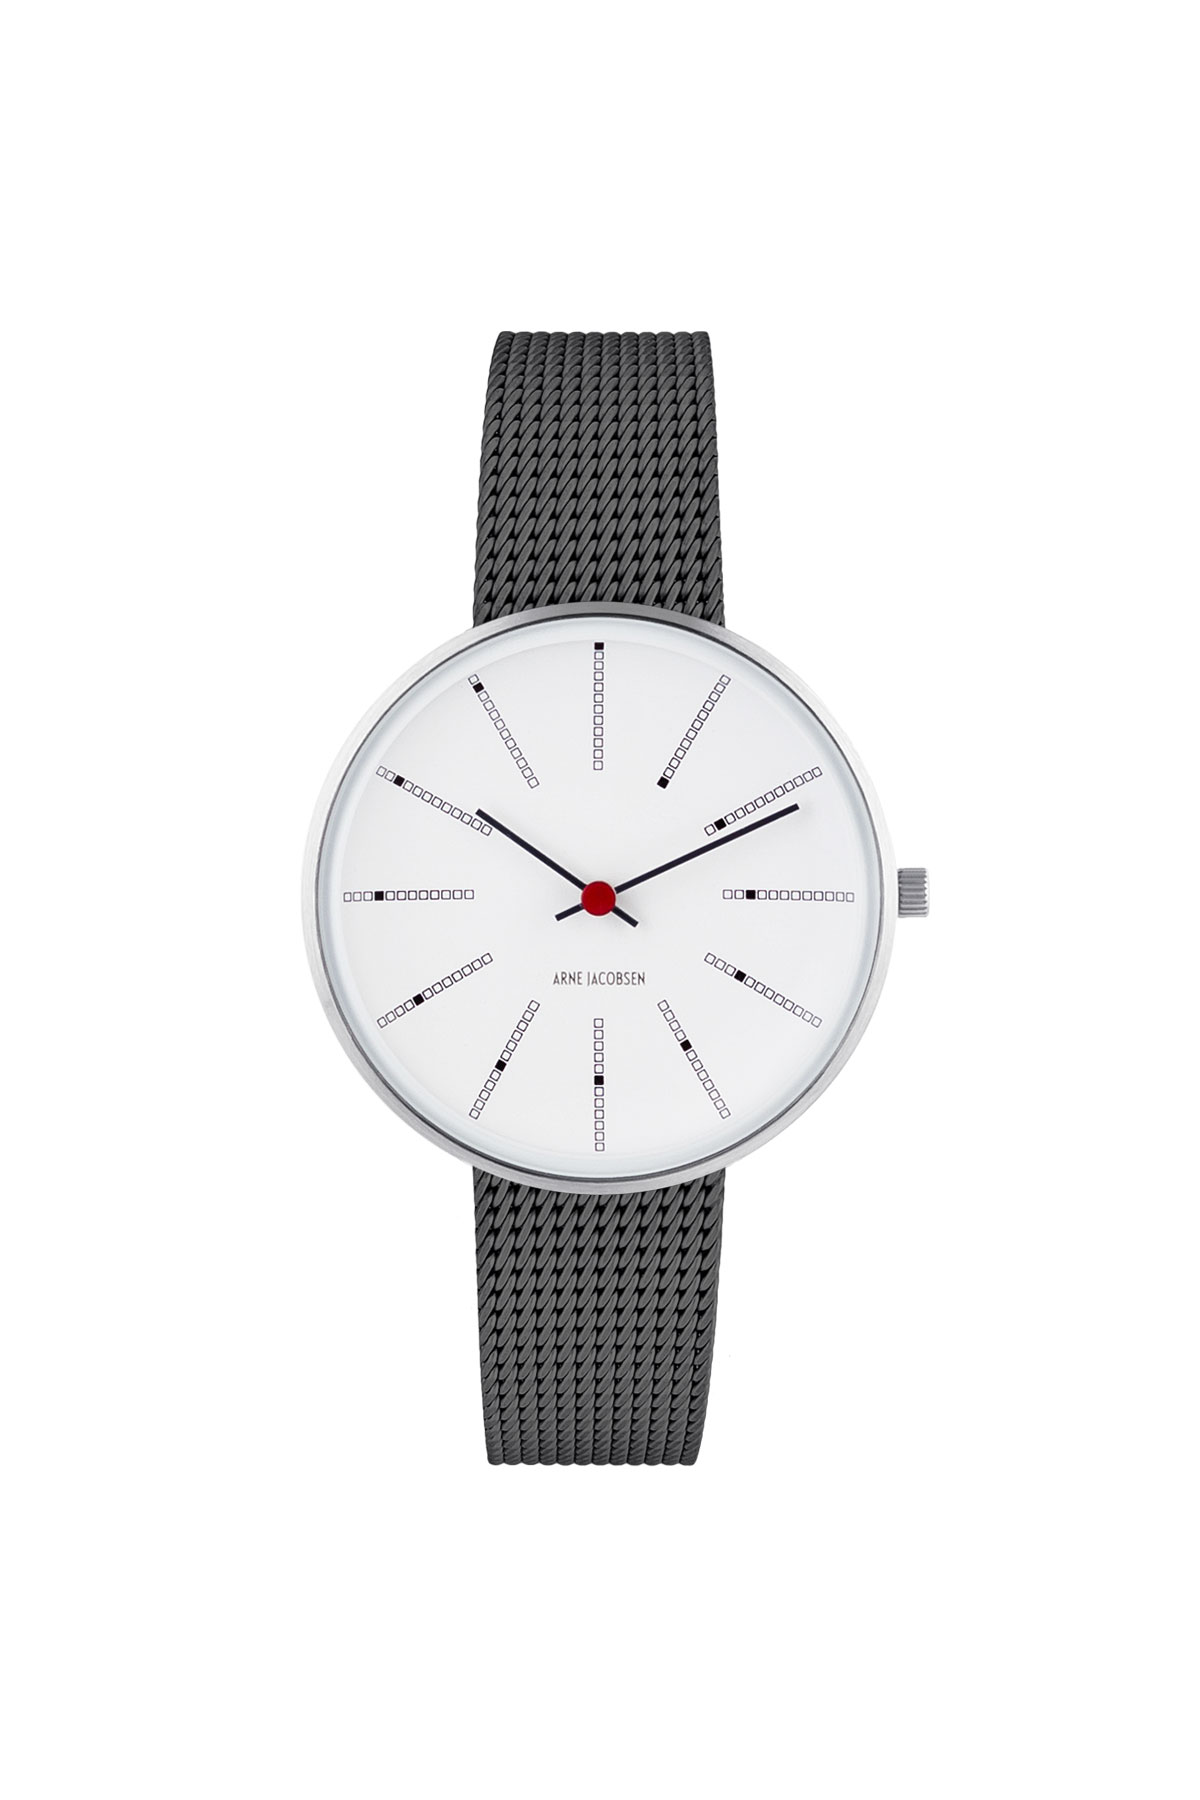 Image of   Arne Jacobsen Bankers 34 mm - 53101-1612